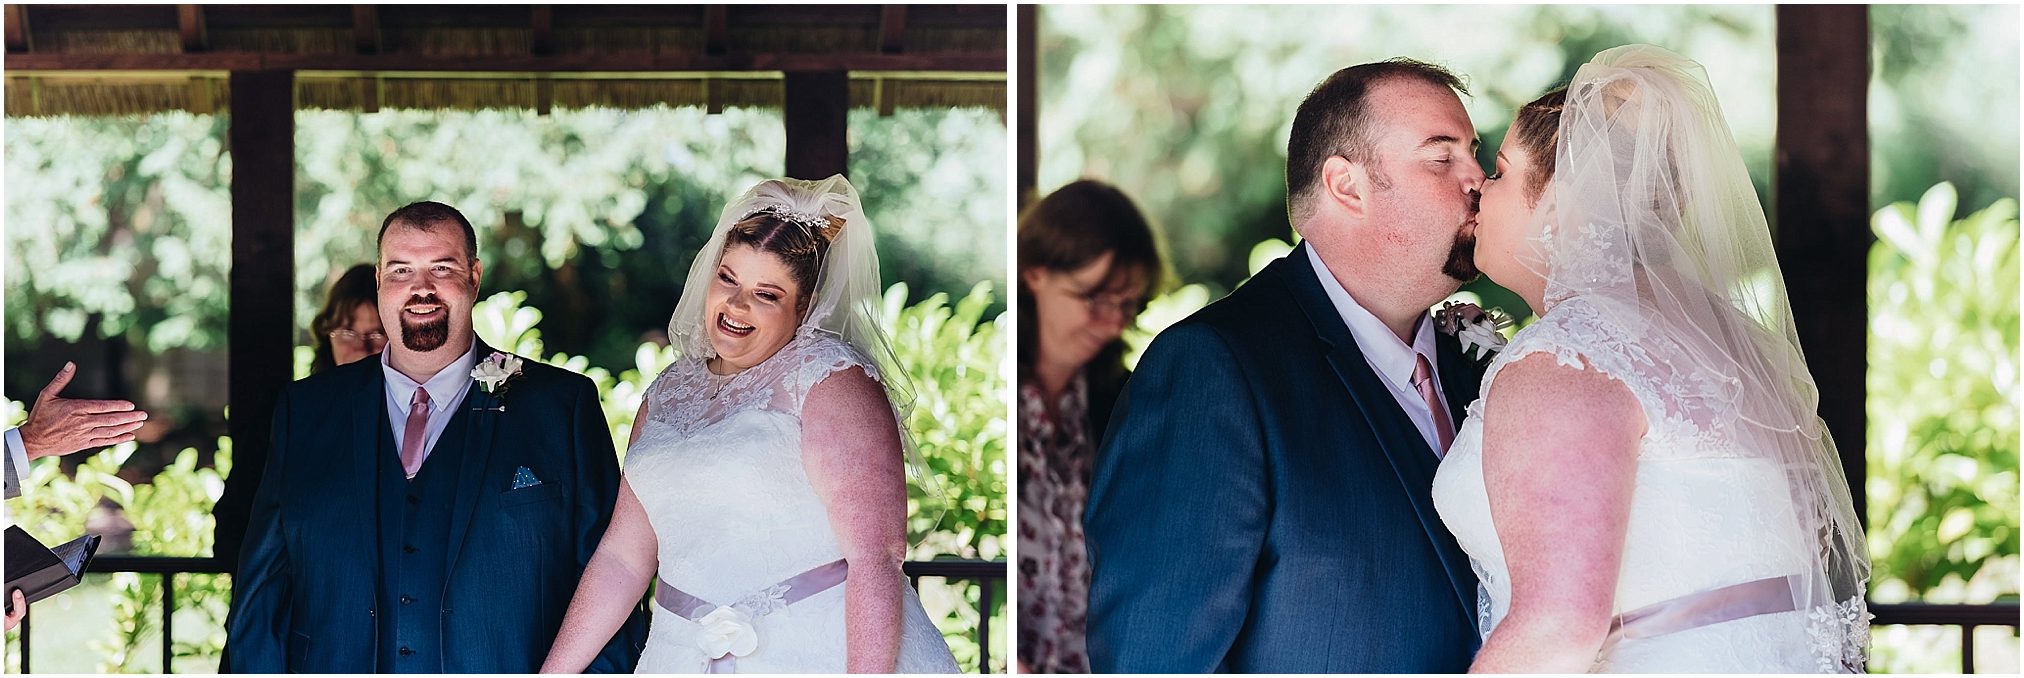 Staffordshire_wedding_photographer-53.jpg